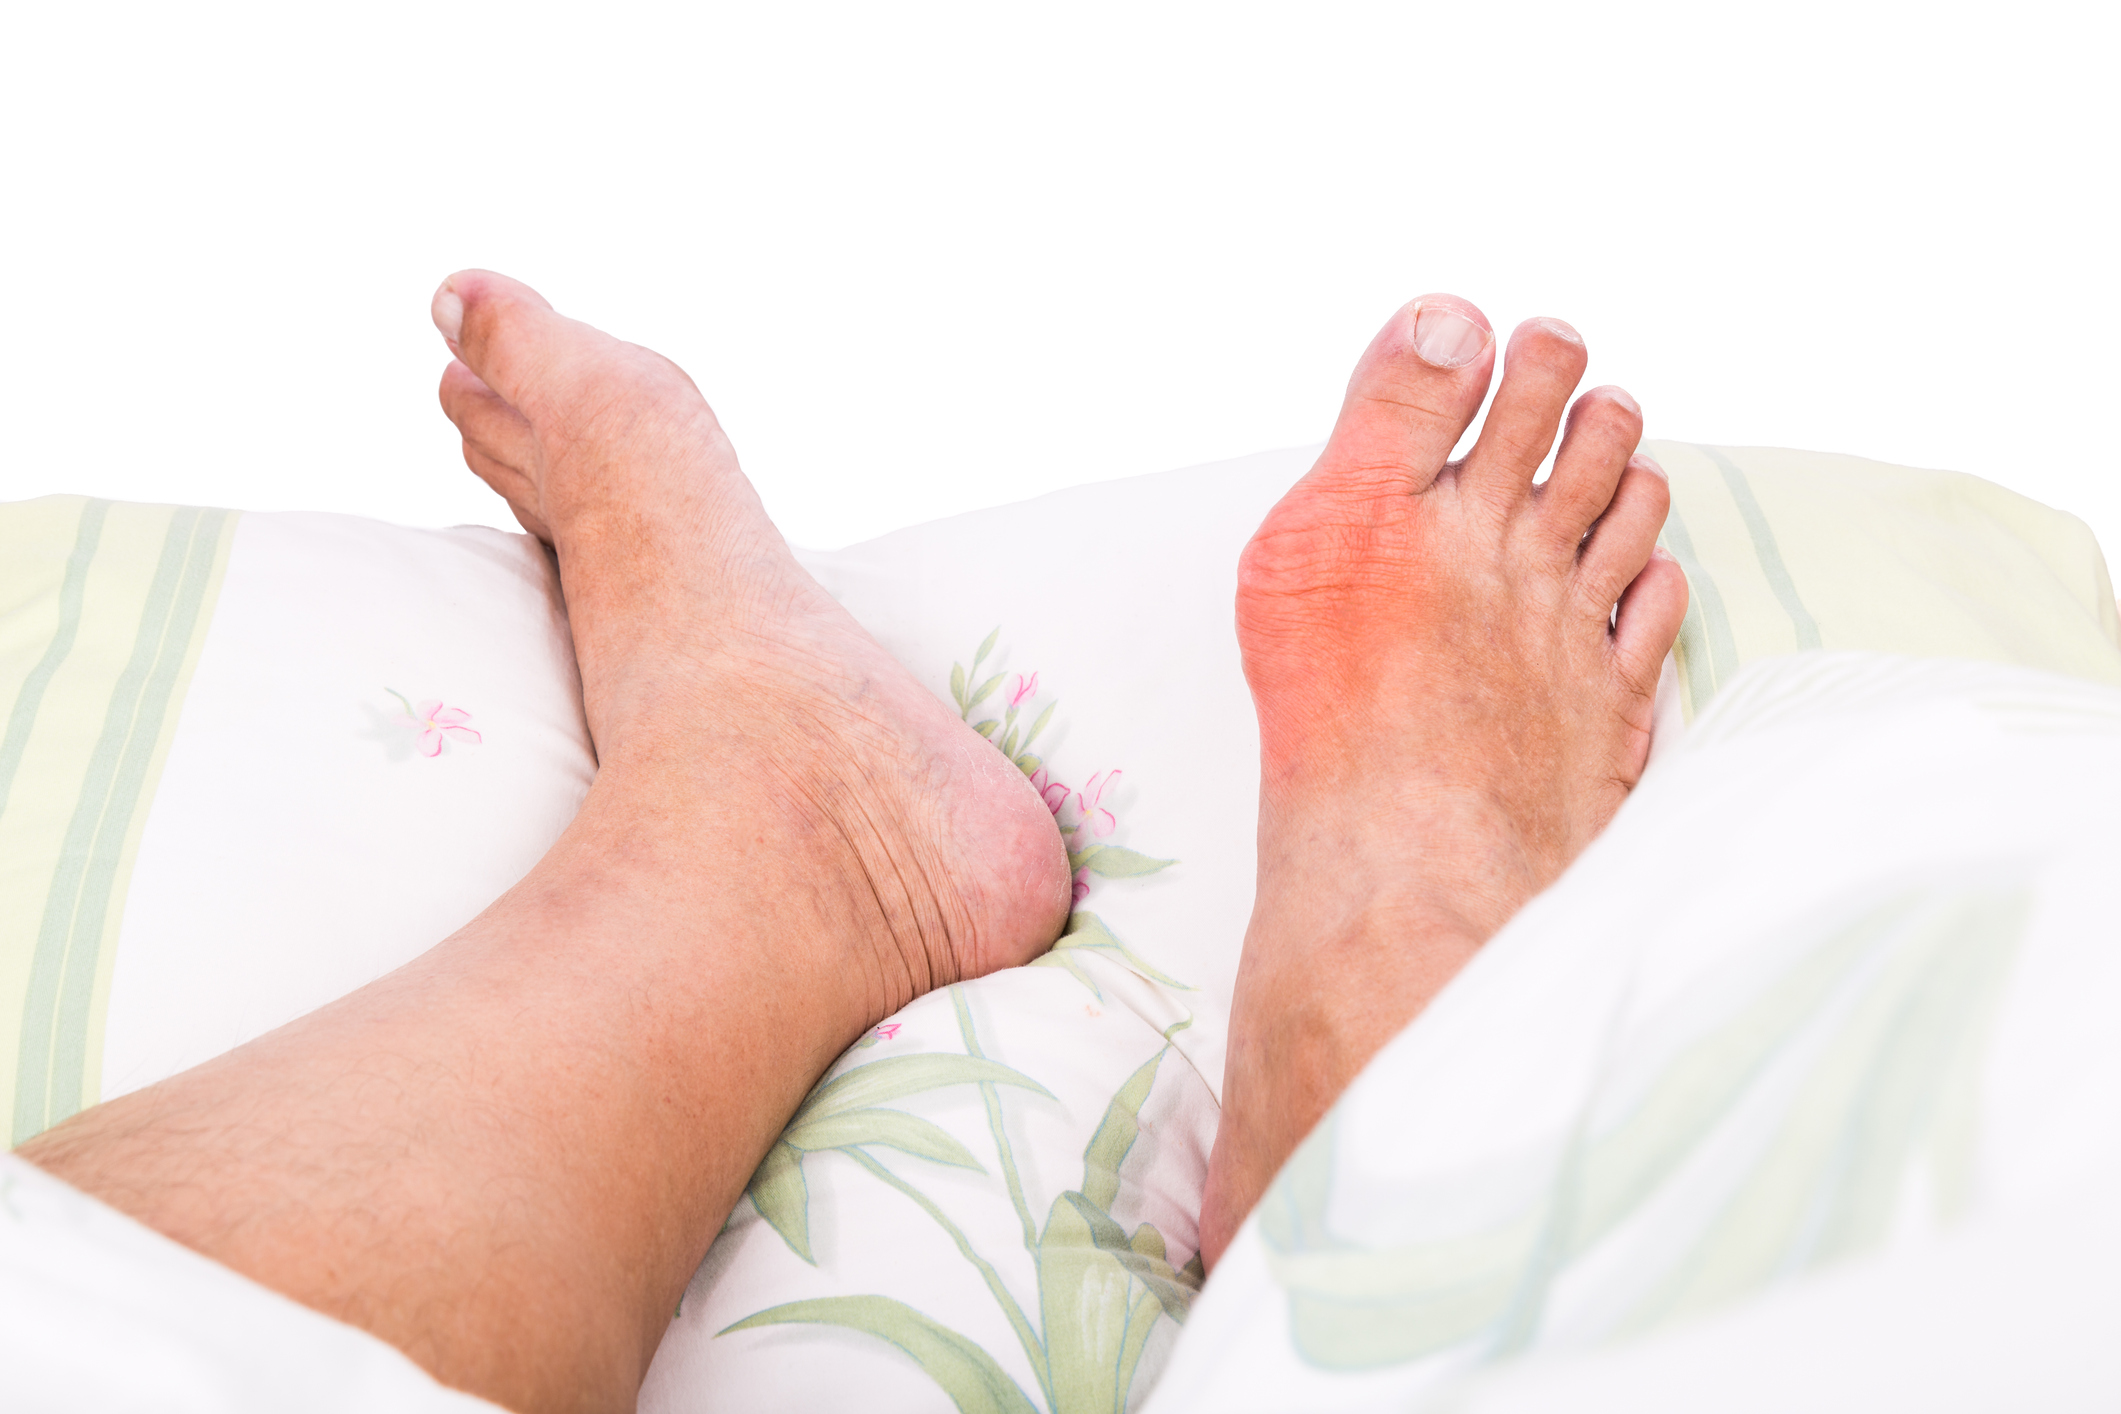 Osteoarthritis risk increases with uric acid levels in joints